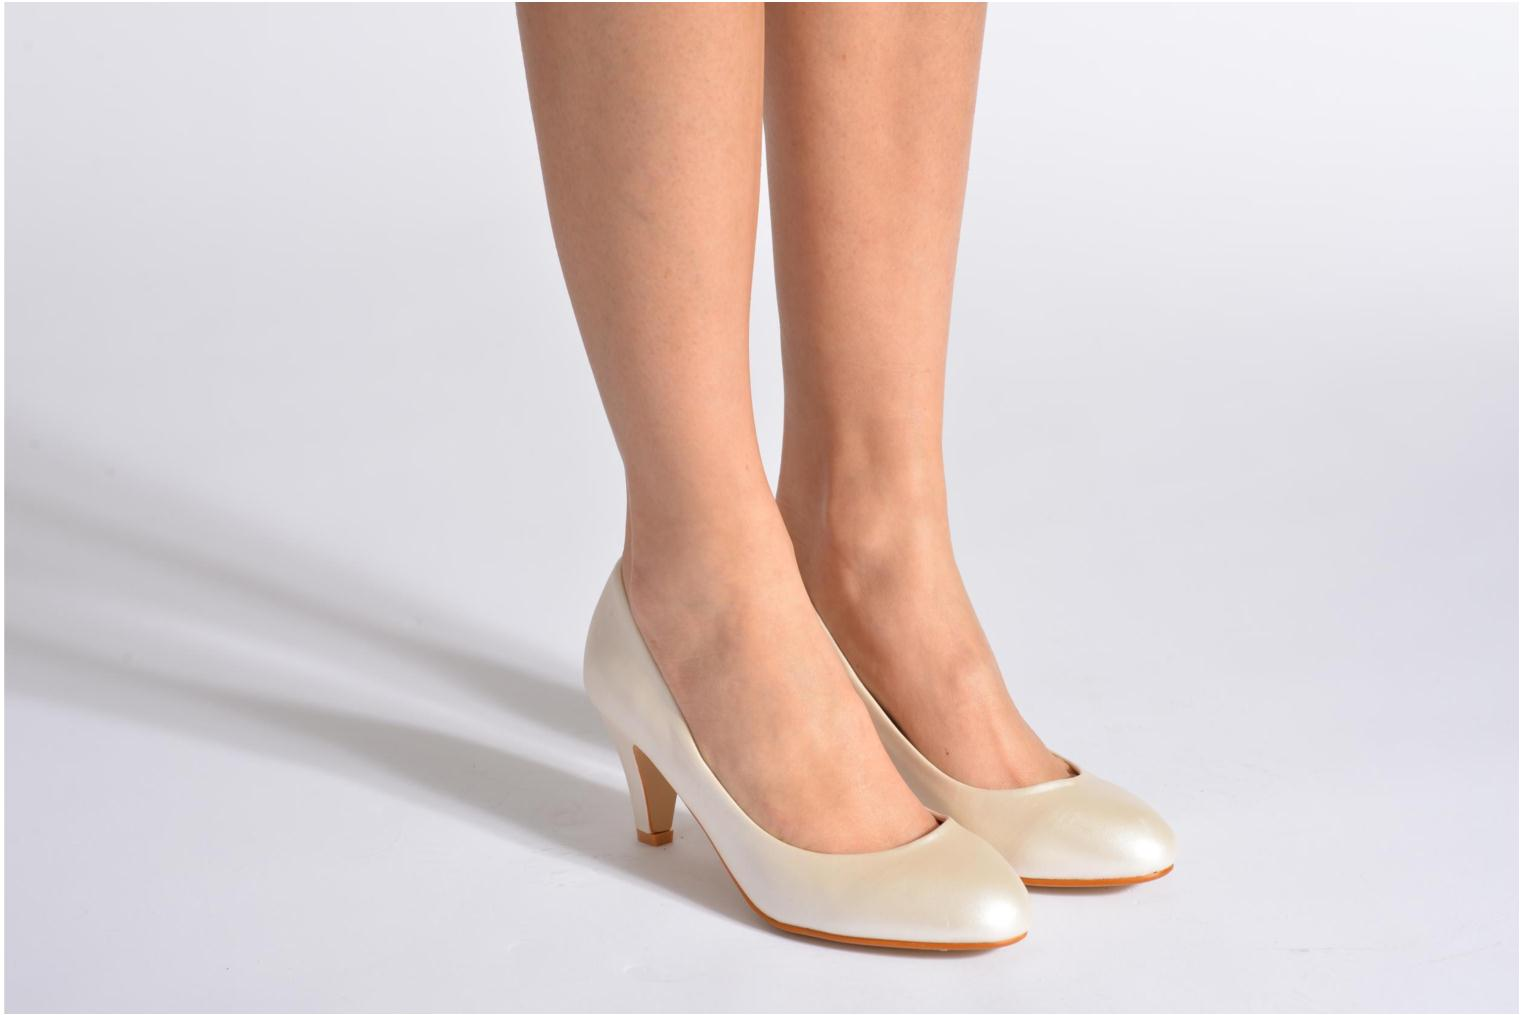 Pumps Eclipse Escarpin Moyen Talon Beige onder